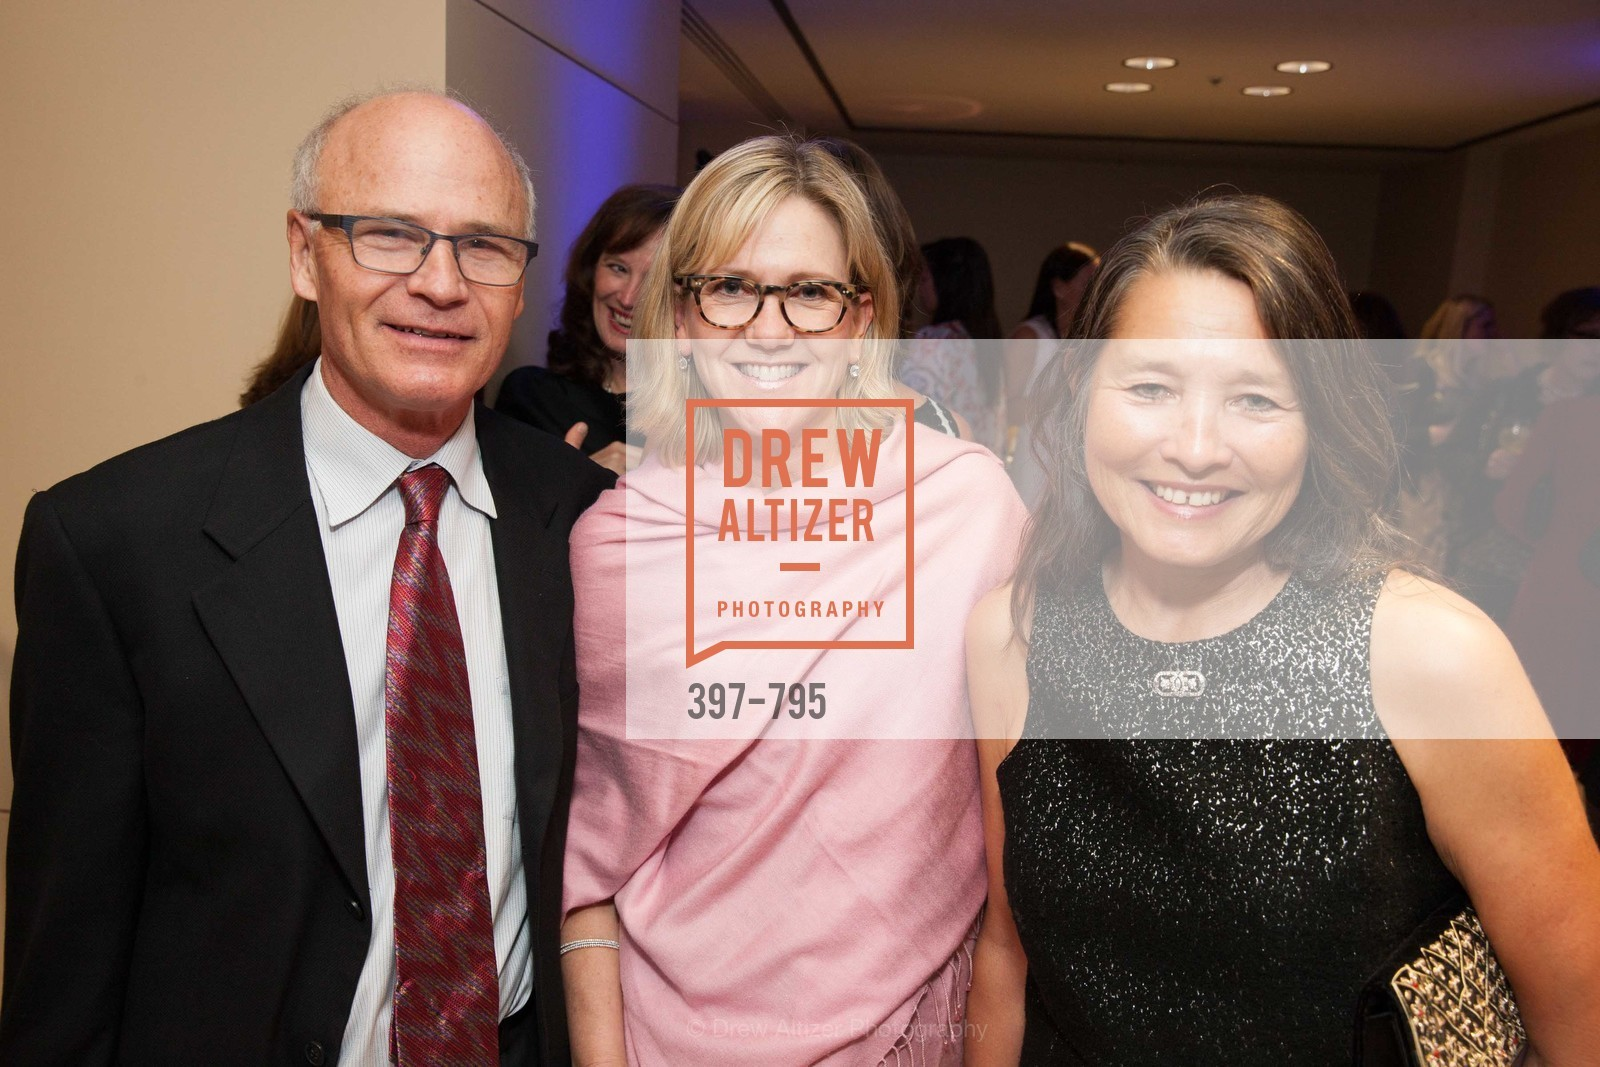 Billy Volkmann, Barbie Callander, Kathleen Volkmann, COMPASS FAMILY SERVICES Annual Spring Benefit:  Every Family Needs A Home, US, April 23rd, 2015,Drew Altizer, Drew Altizer Photography, full-service agency, private events, San Francisco photographer, photographer california